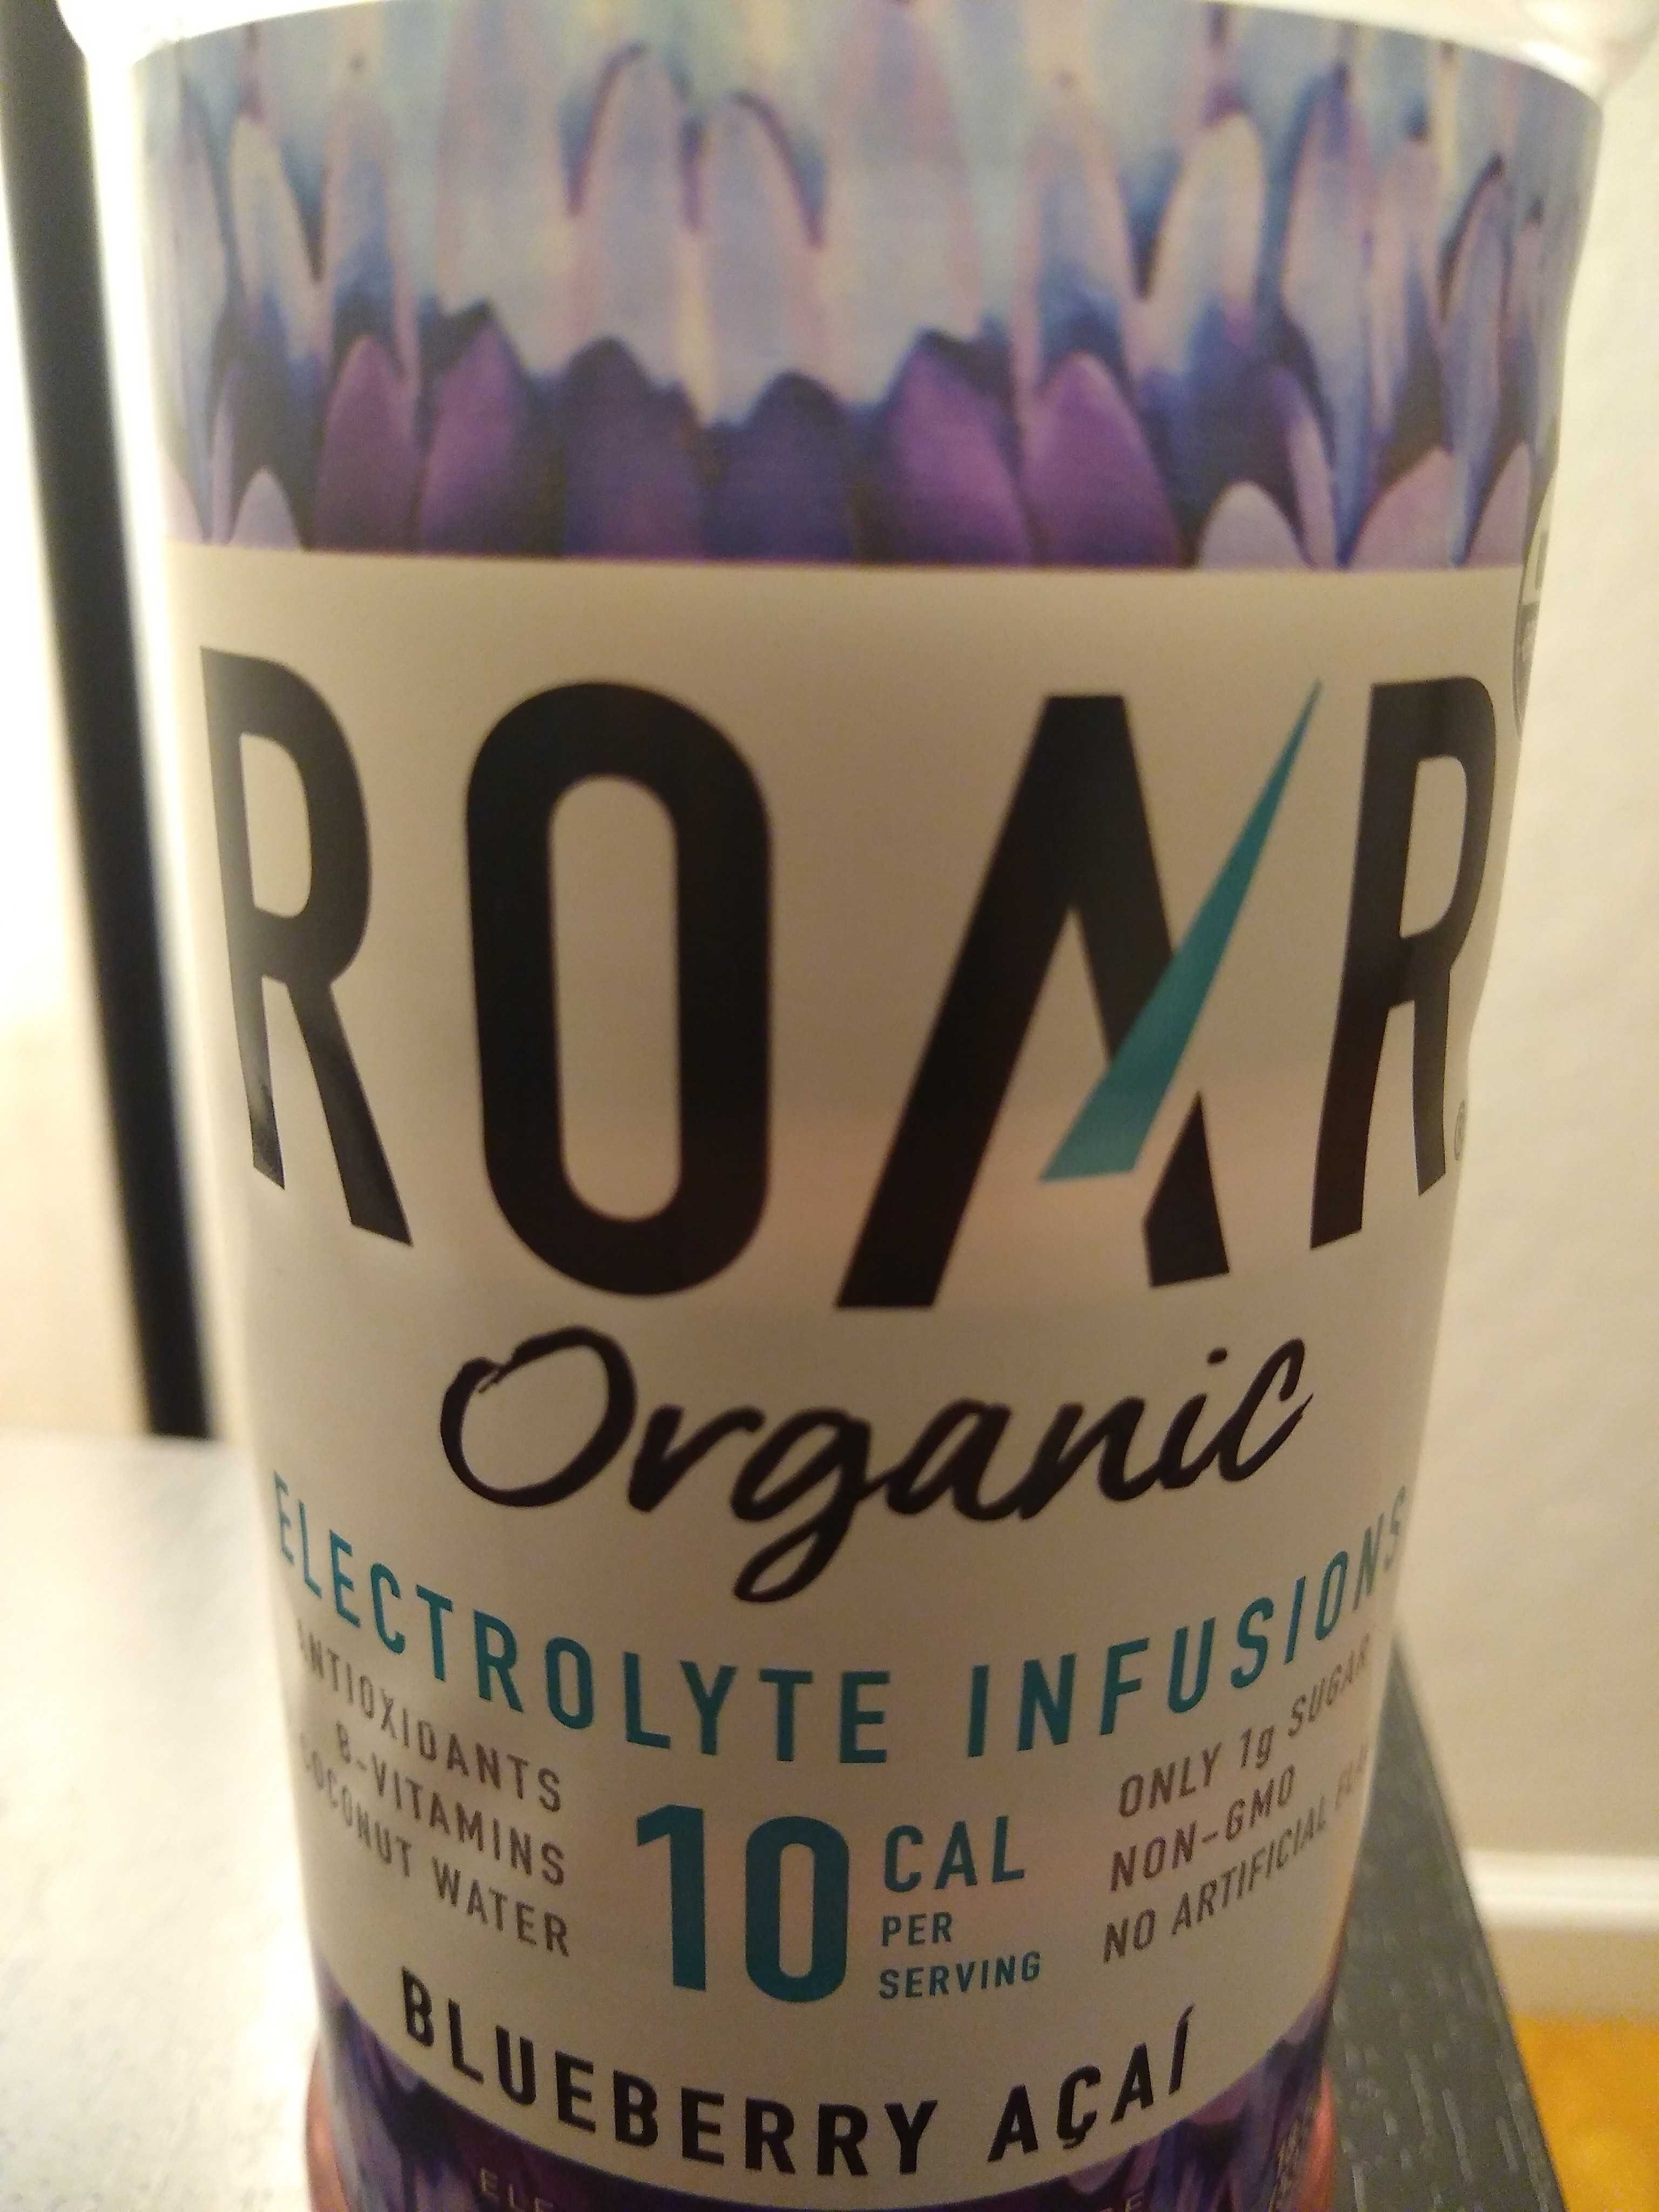 Organic electrolyte infusions blueberry acai - Product